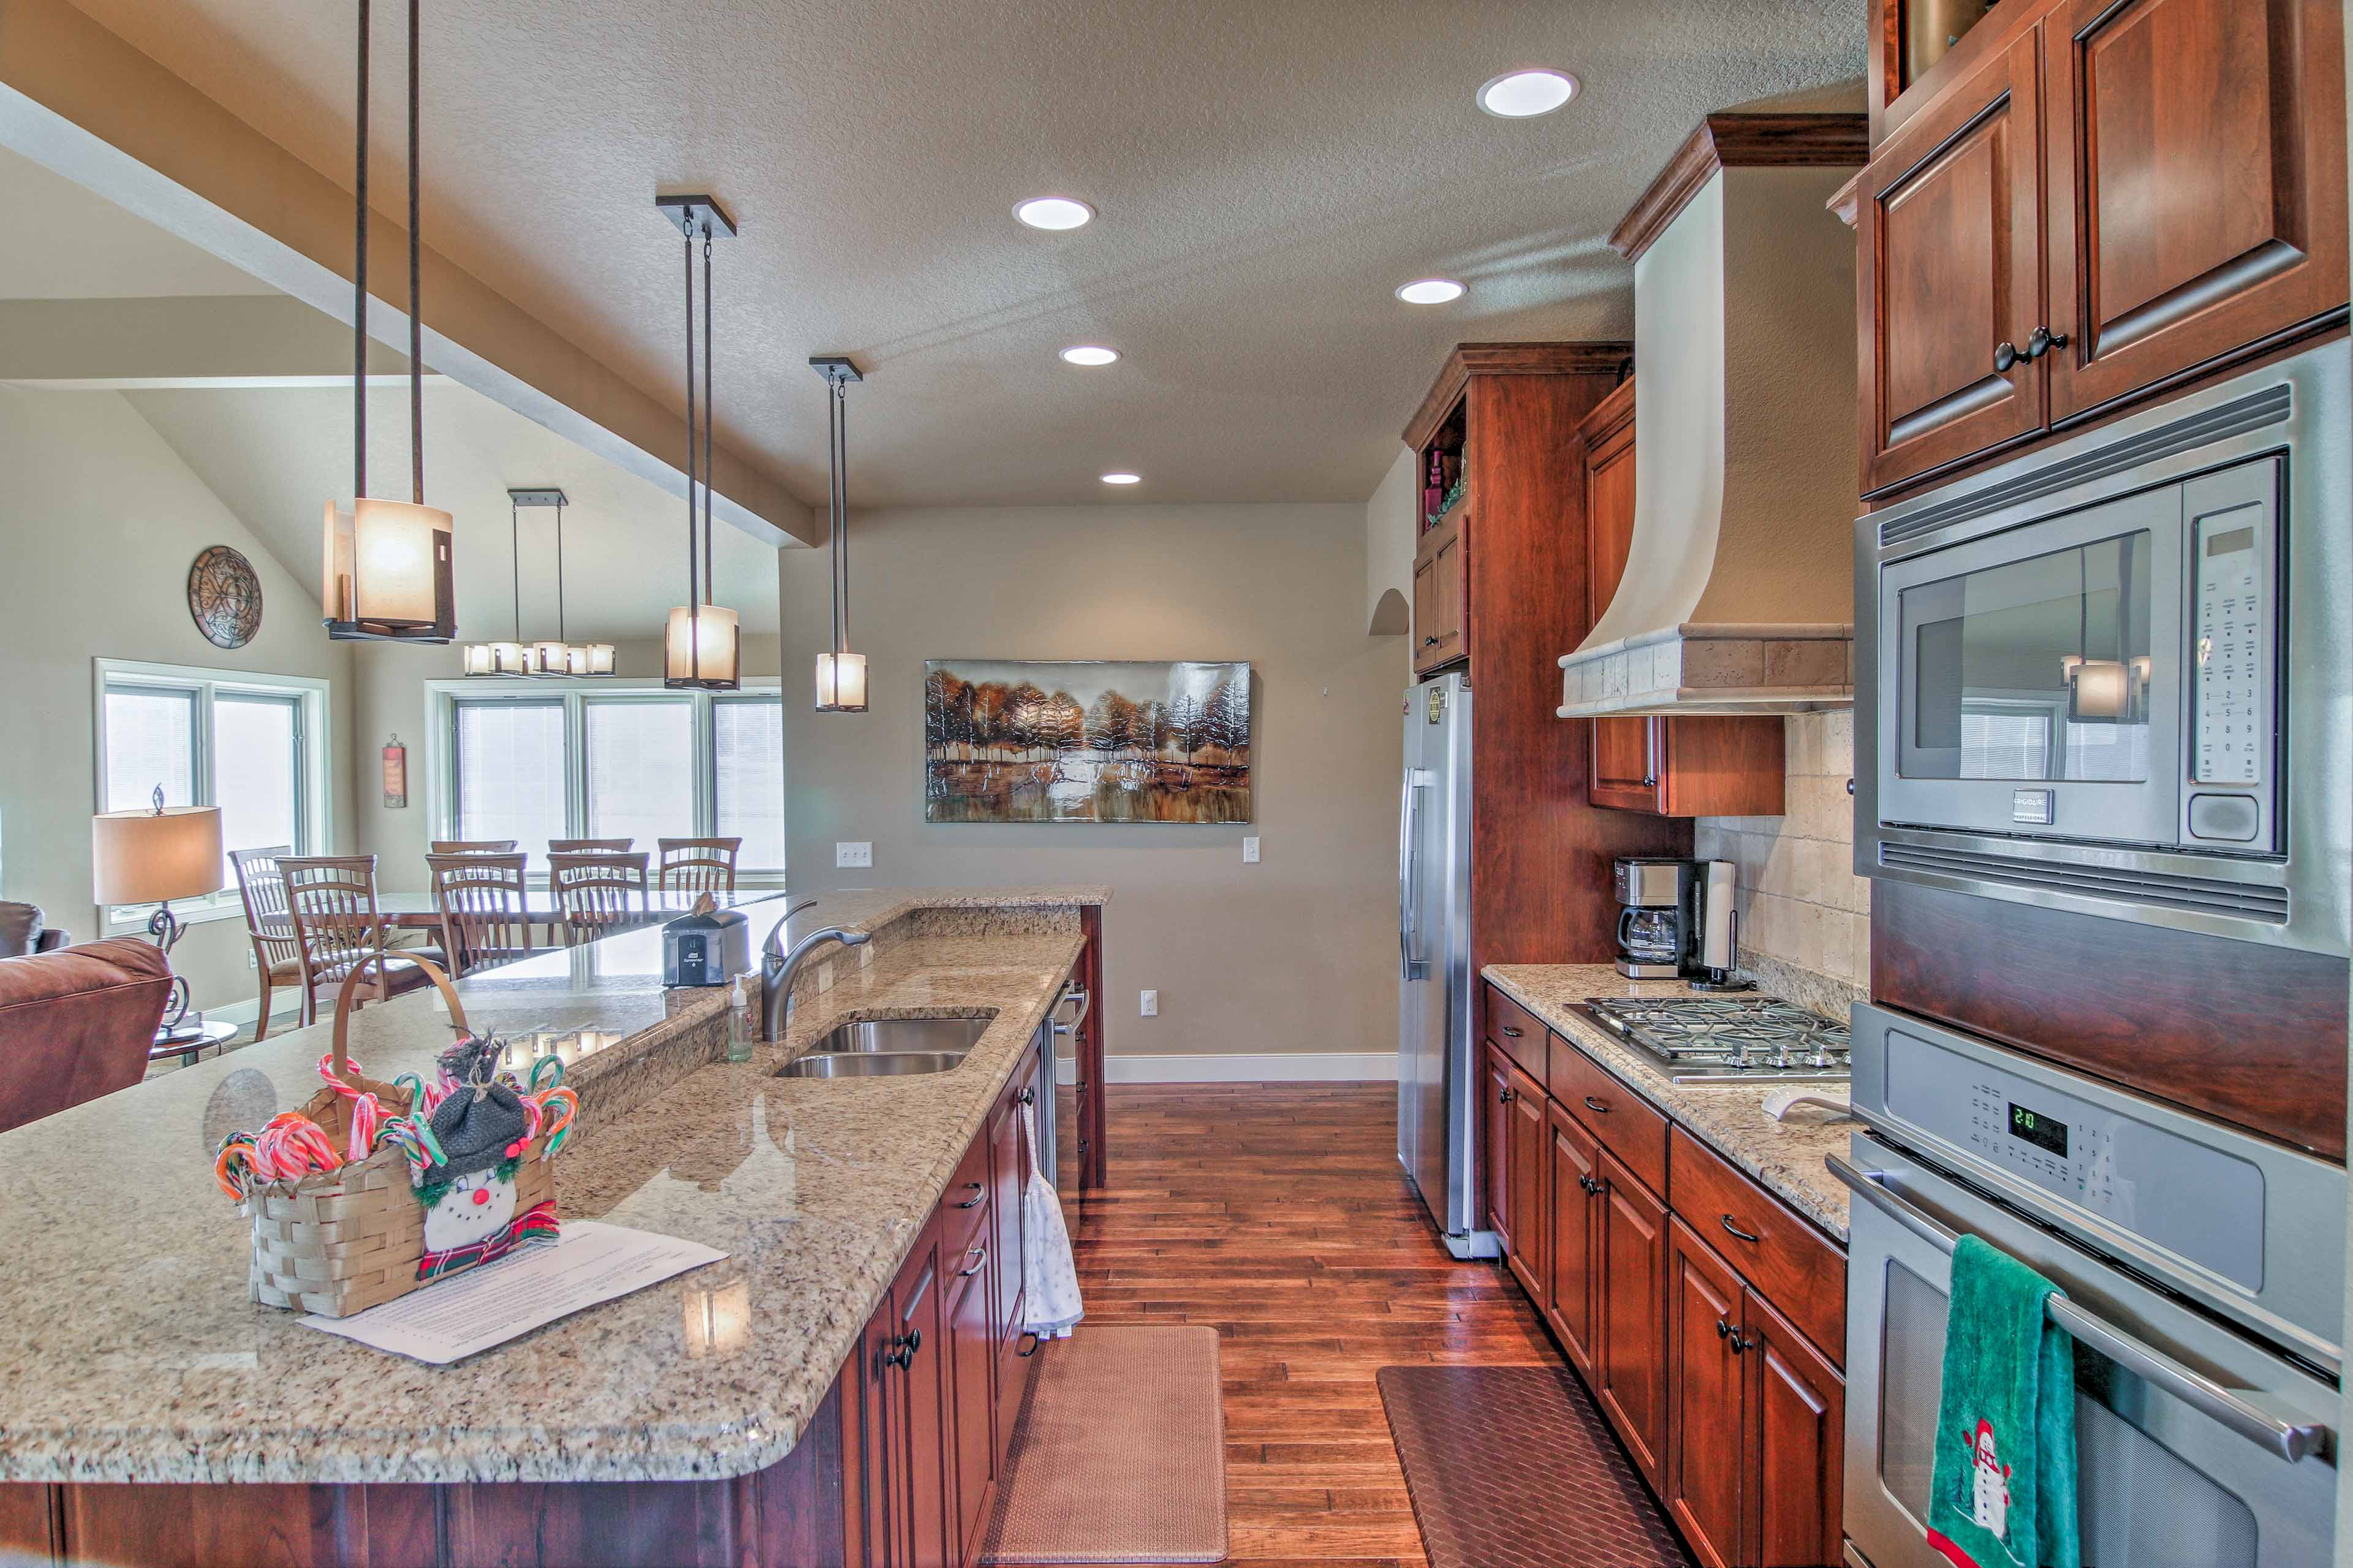 Stainless steel appliances and ample granite countertops highlight the kitchen.